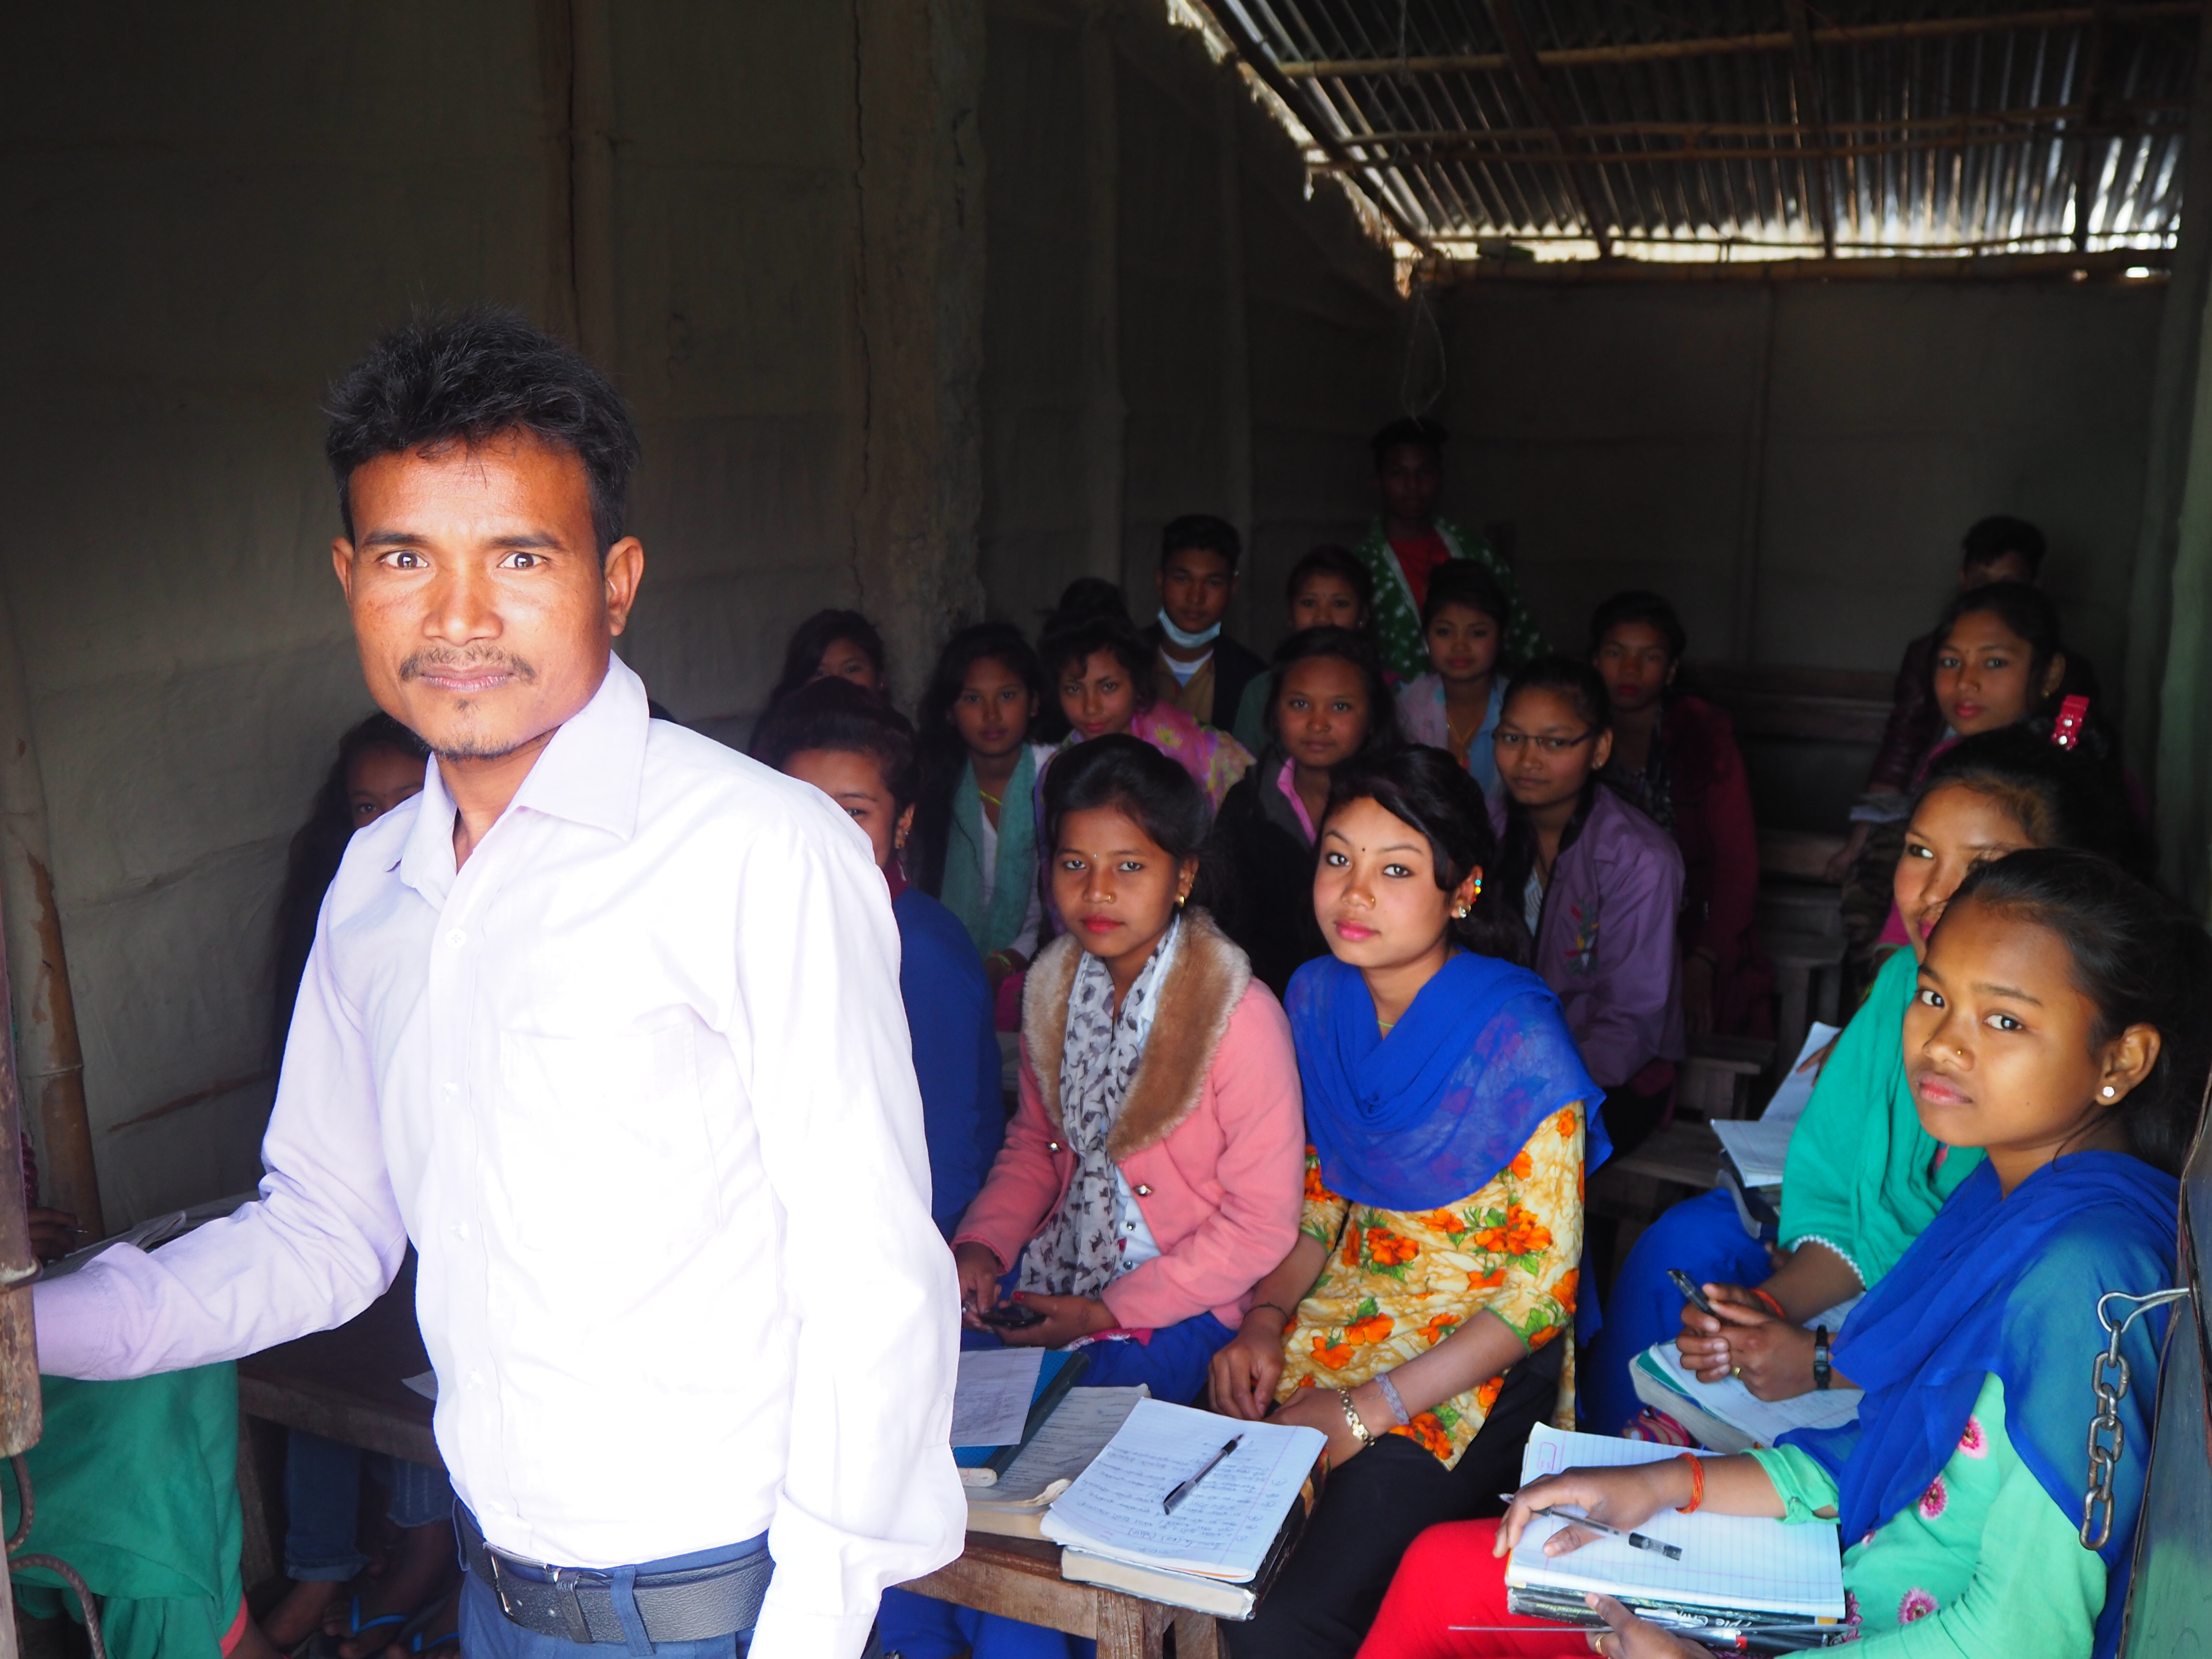 Tuition class in Rajapur, taught by tutor Sukh Ram Chaudhary, 31. Pramila Tharu attended Chaudhary's class before she died. Credit: Peter Gill